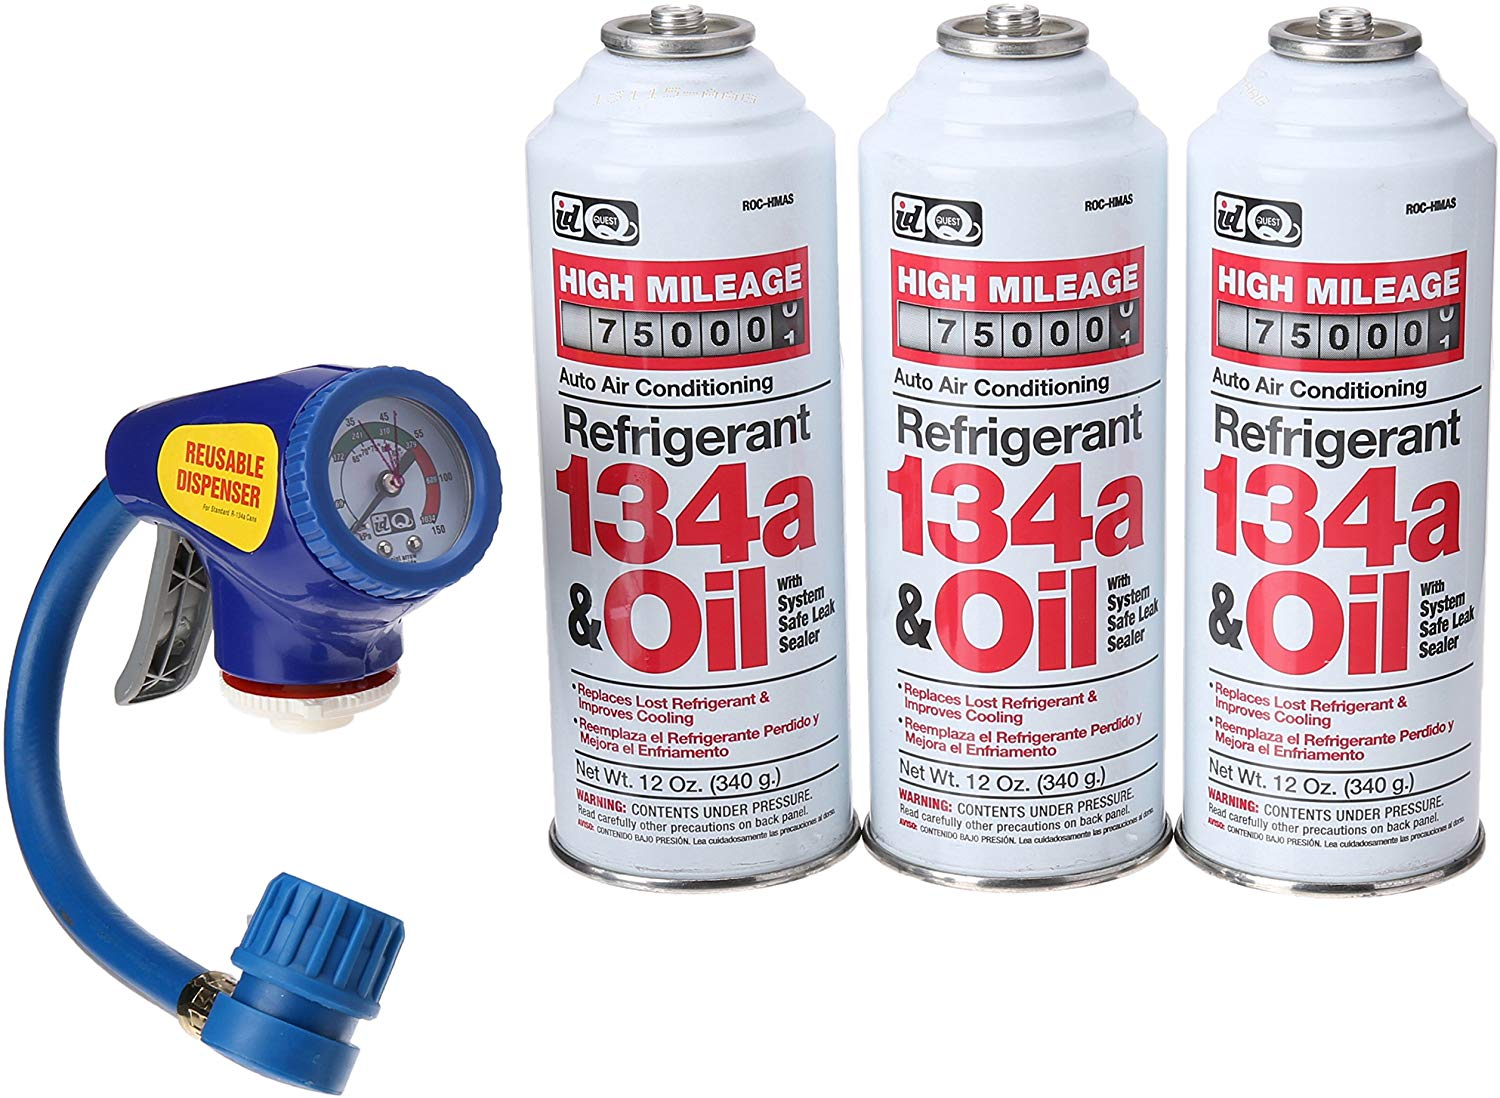 InterDynamics EX Chill Recharge & Retrofit Kit | Gas Kits for Air Conditioners